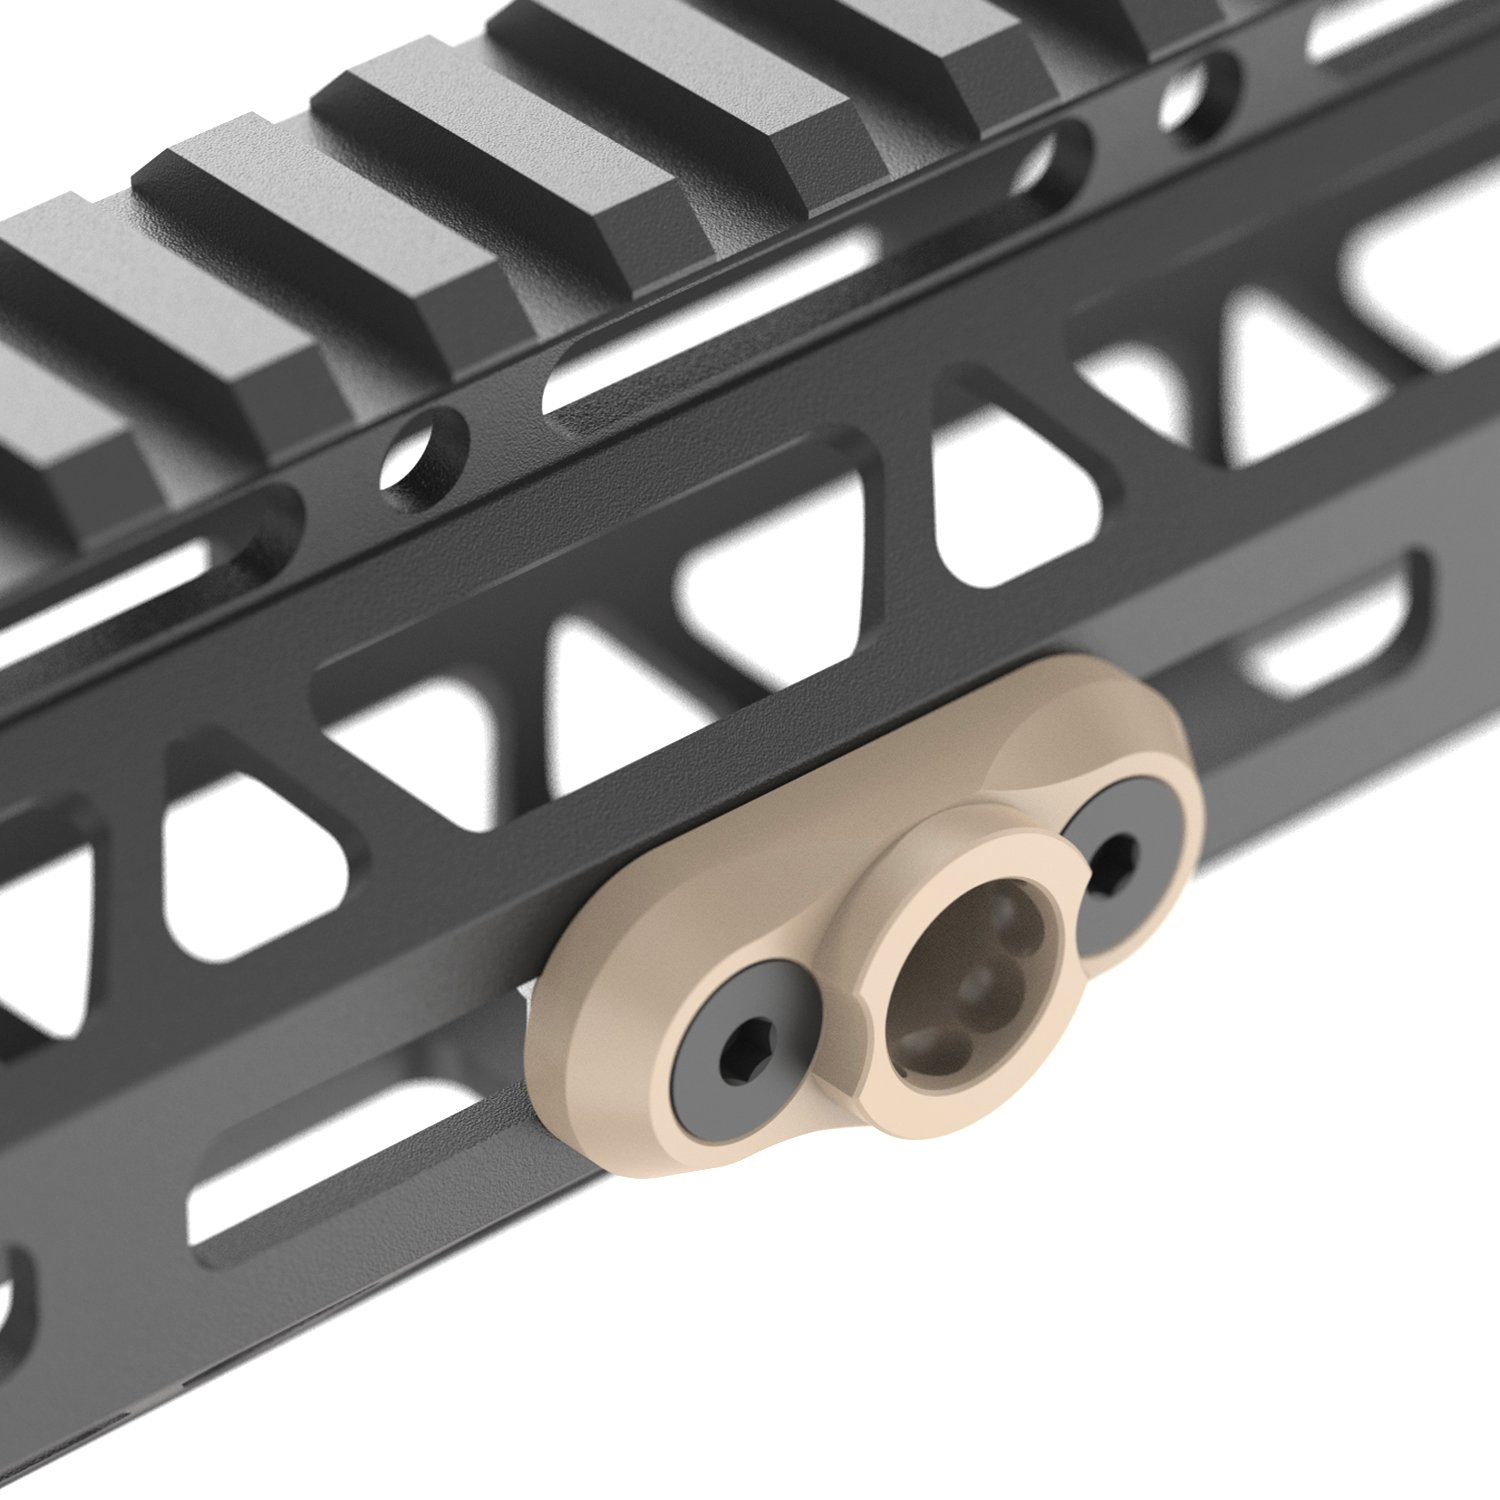 //Keymod Standard QD Sling Swivel Adaptor Rail Mount QD Swivel is Included R Tough Tactical Tools M-LOK